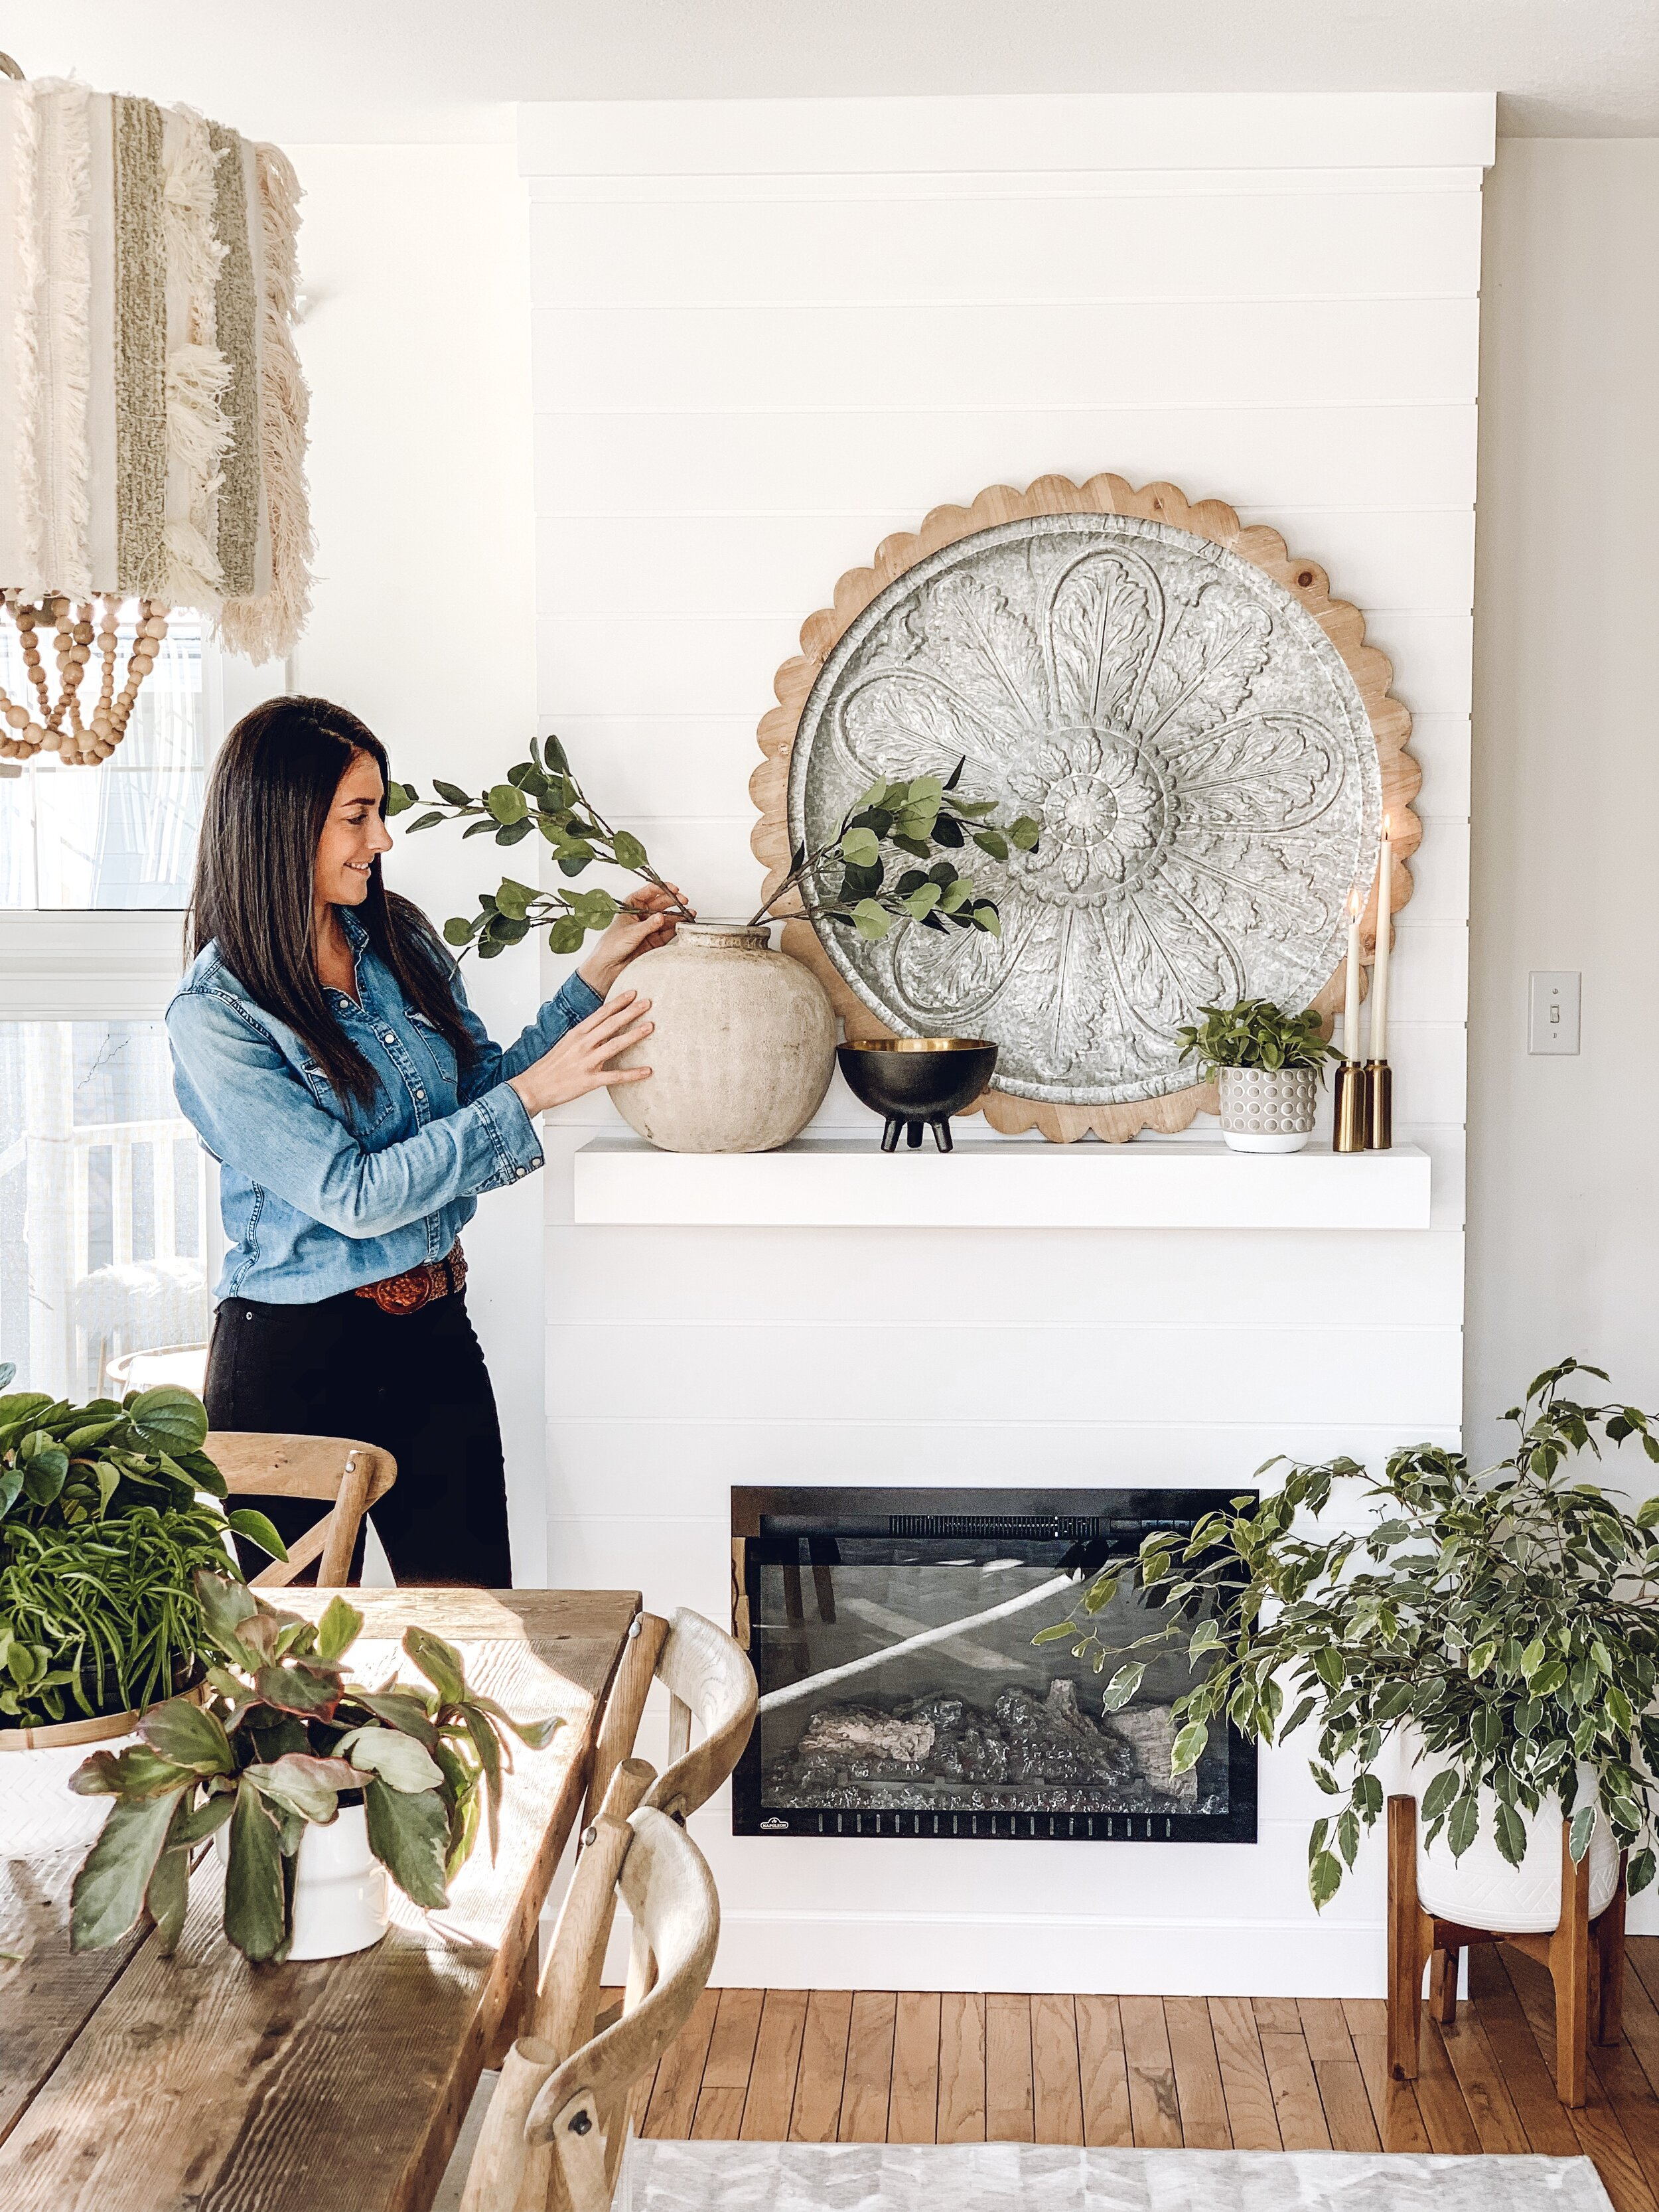 a woman holding some stems in a vase for an electric fireplace